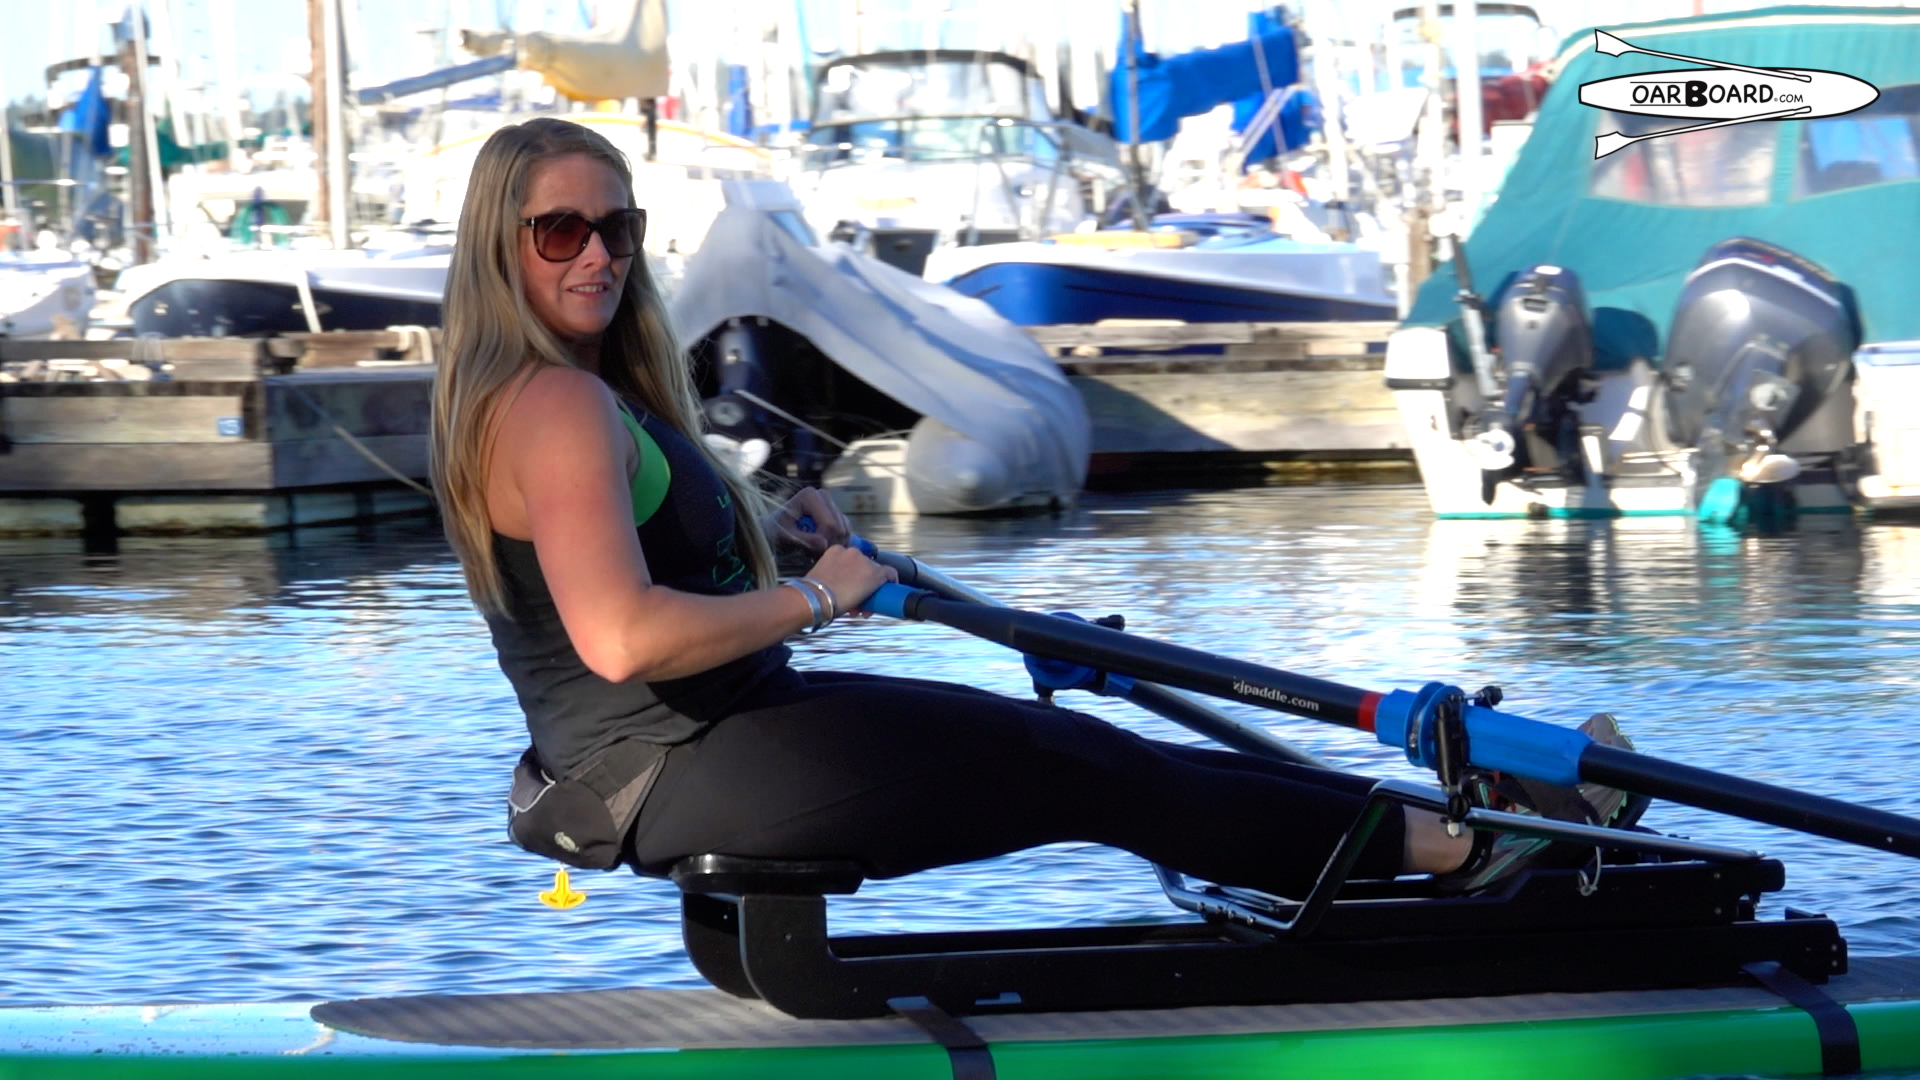 Diana-Lesieur-Harbour-Rowing-Oar-Board_Rower-SUP-Stand-up-Paddle-Board